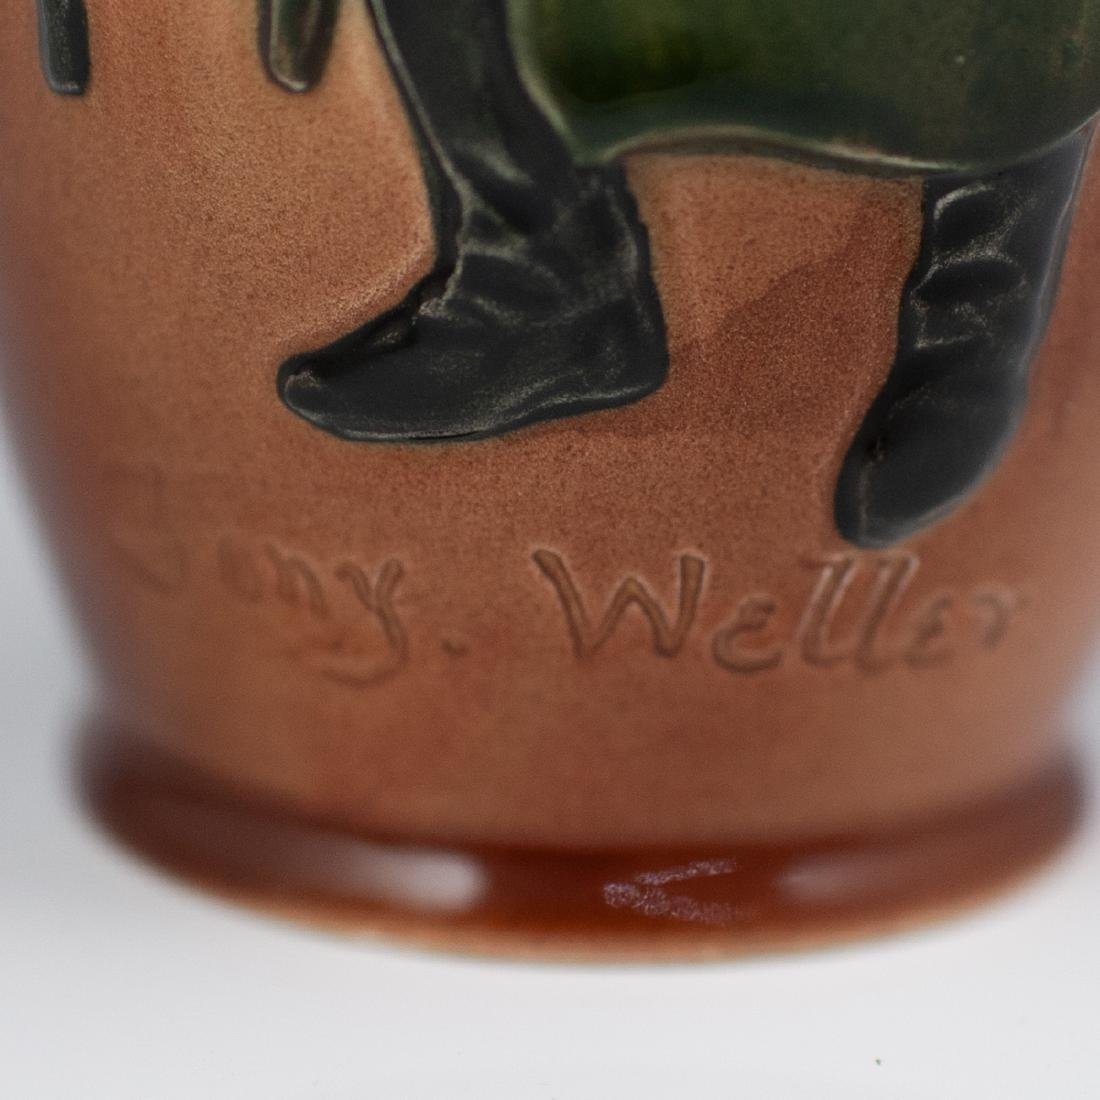 Royal Doulton Tony Weller Whiskey Pitcher - 4